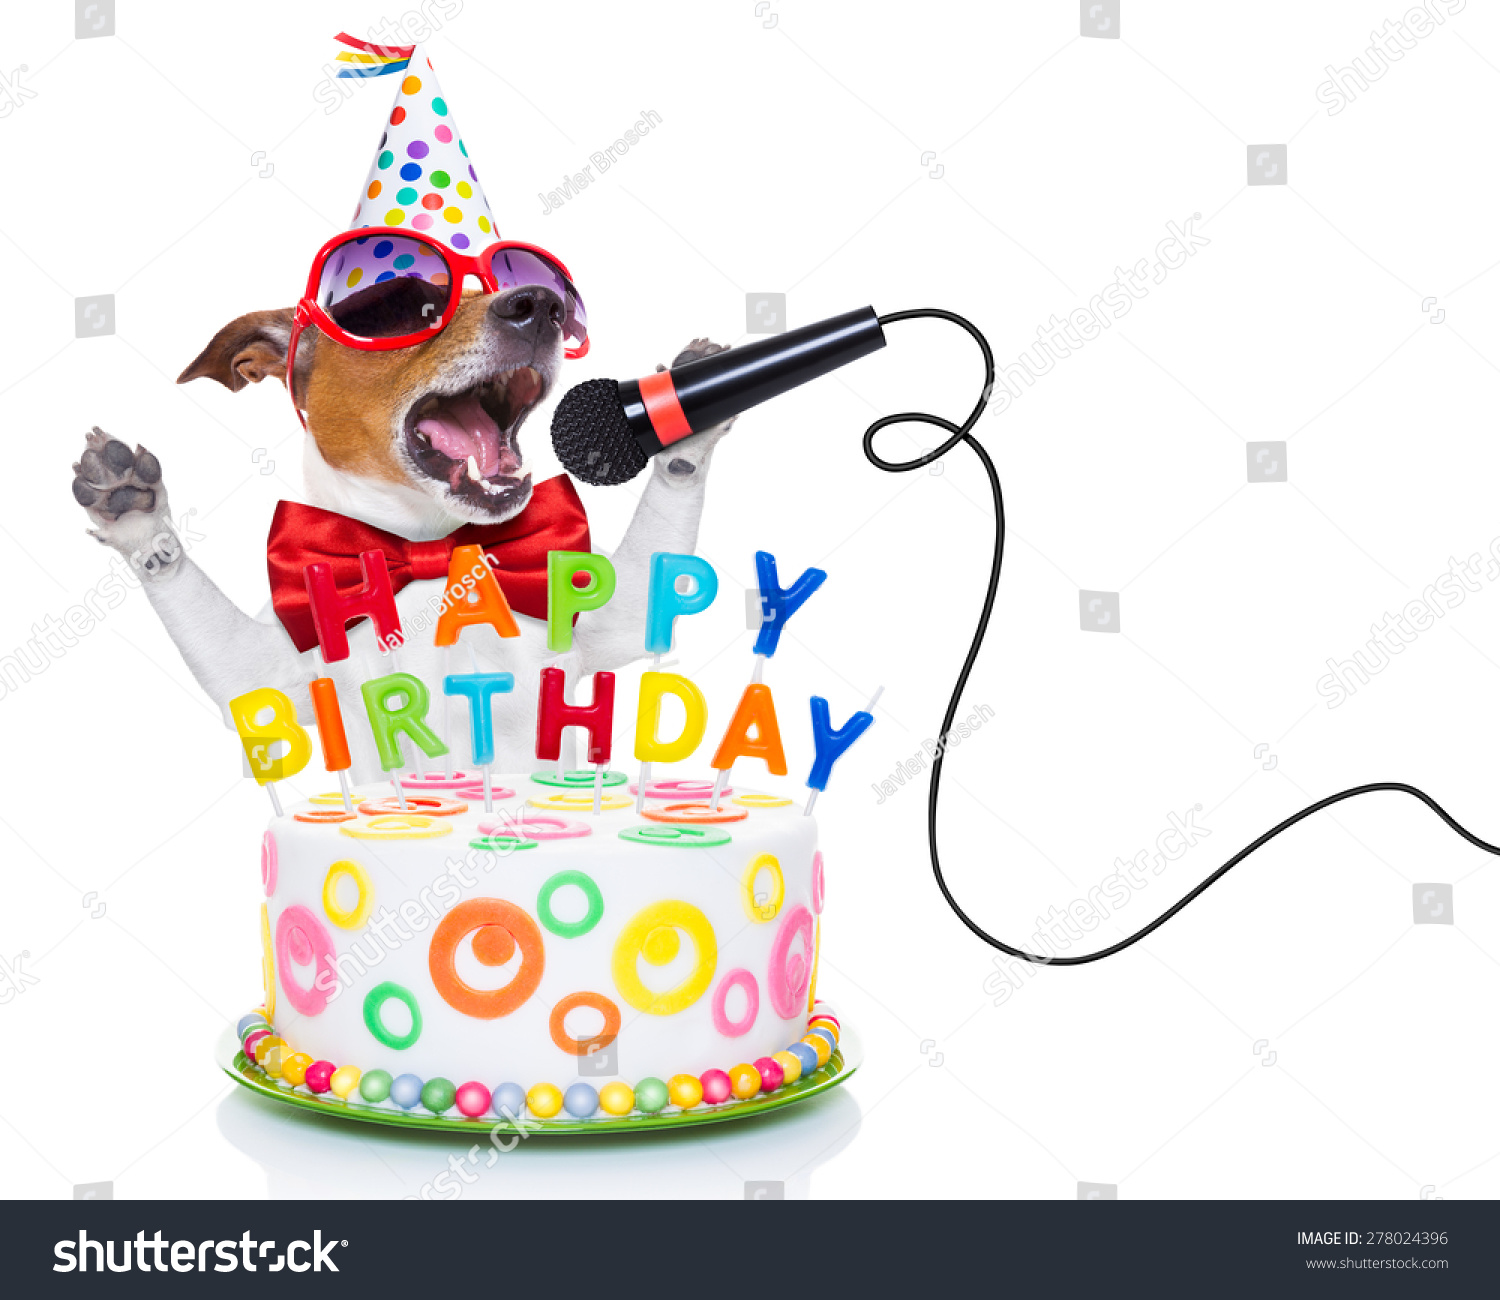 Jack Russell Dog As A Surprise, Singing Birthday Song Like